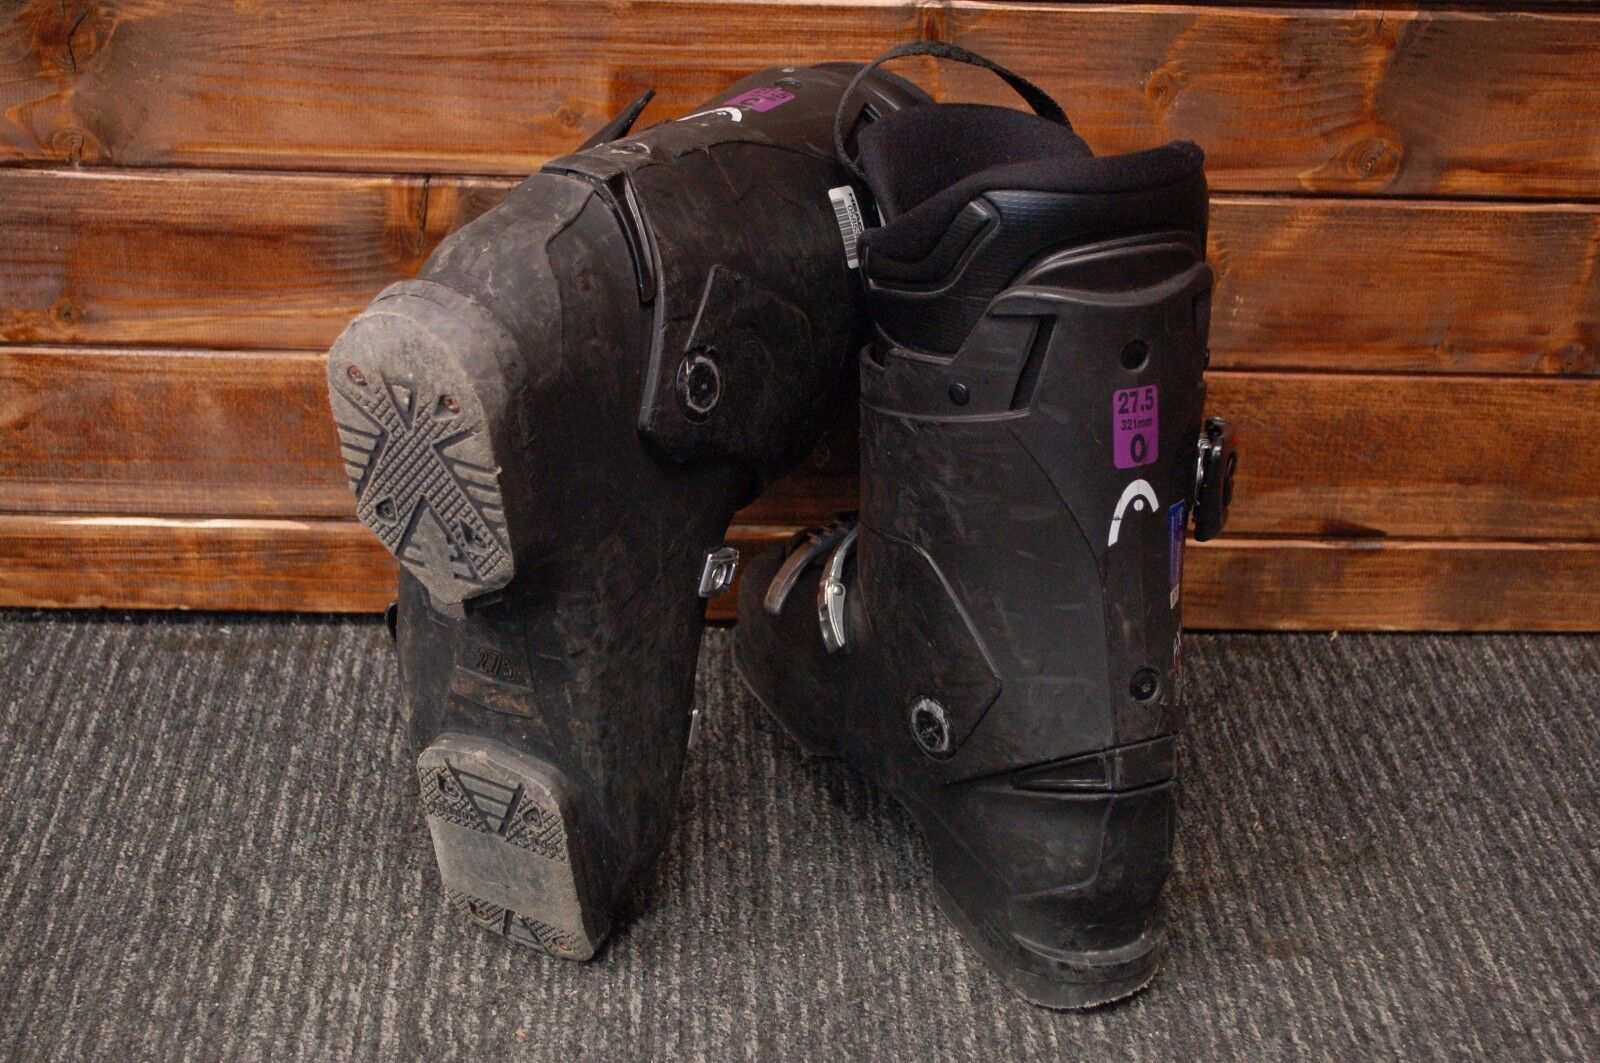 HEAD FX 65 HT Ski Stiefel (US 9; EU EU EU 42.5; UK 8.5) 04adde